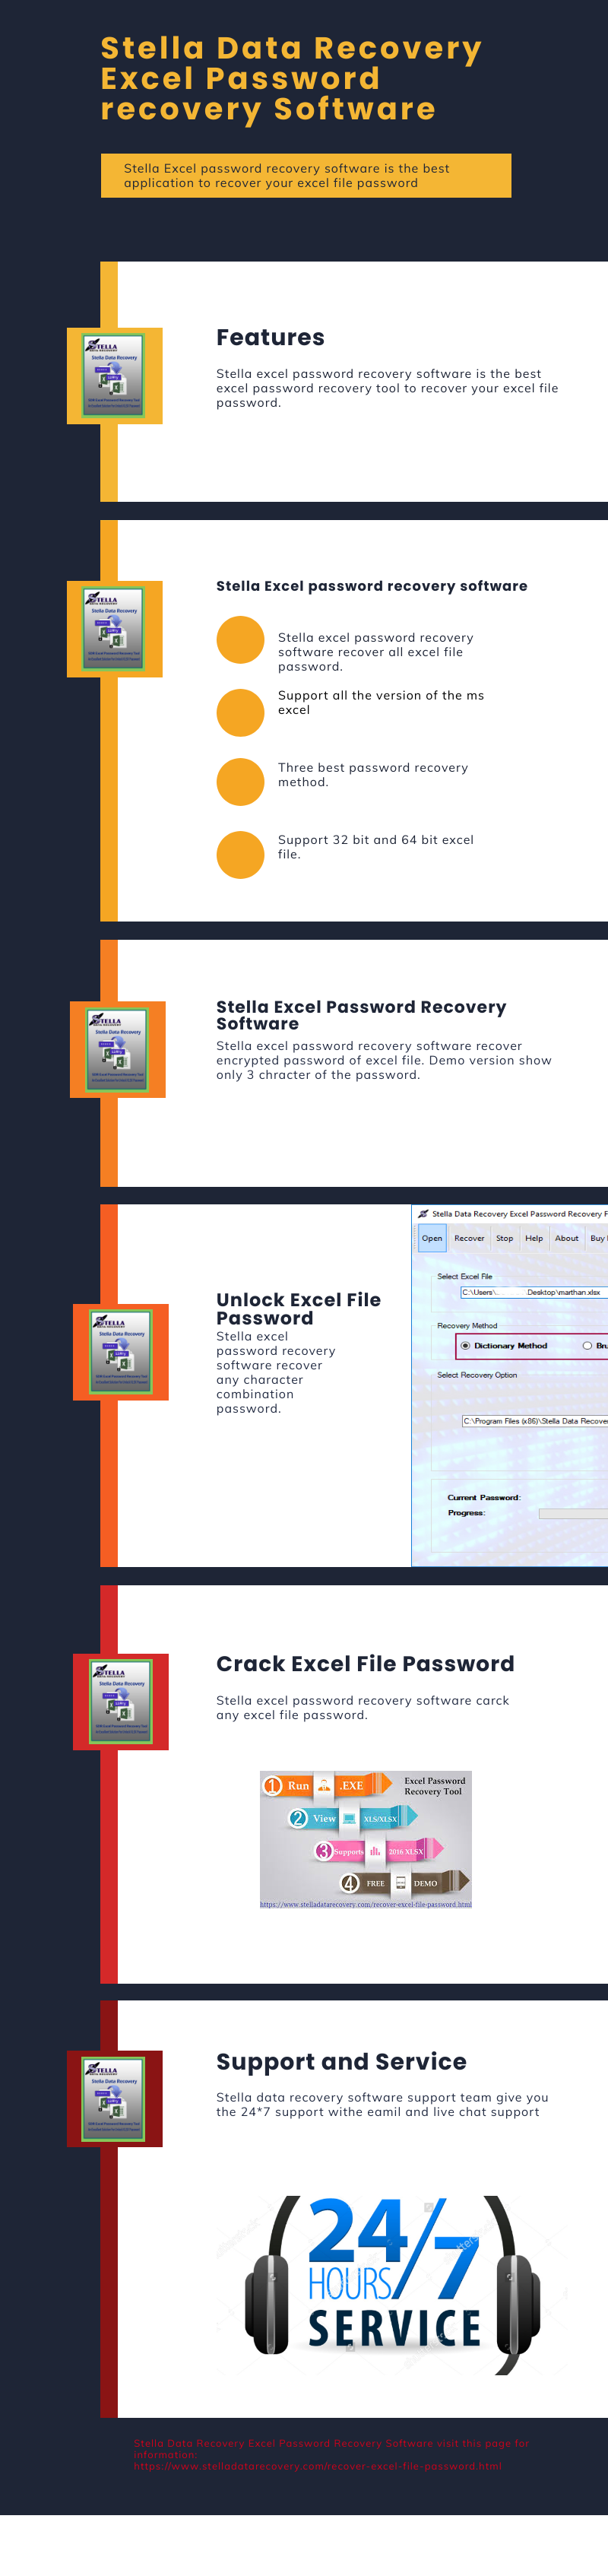 Best Excel password recovery software